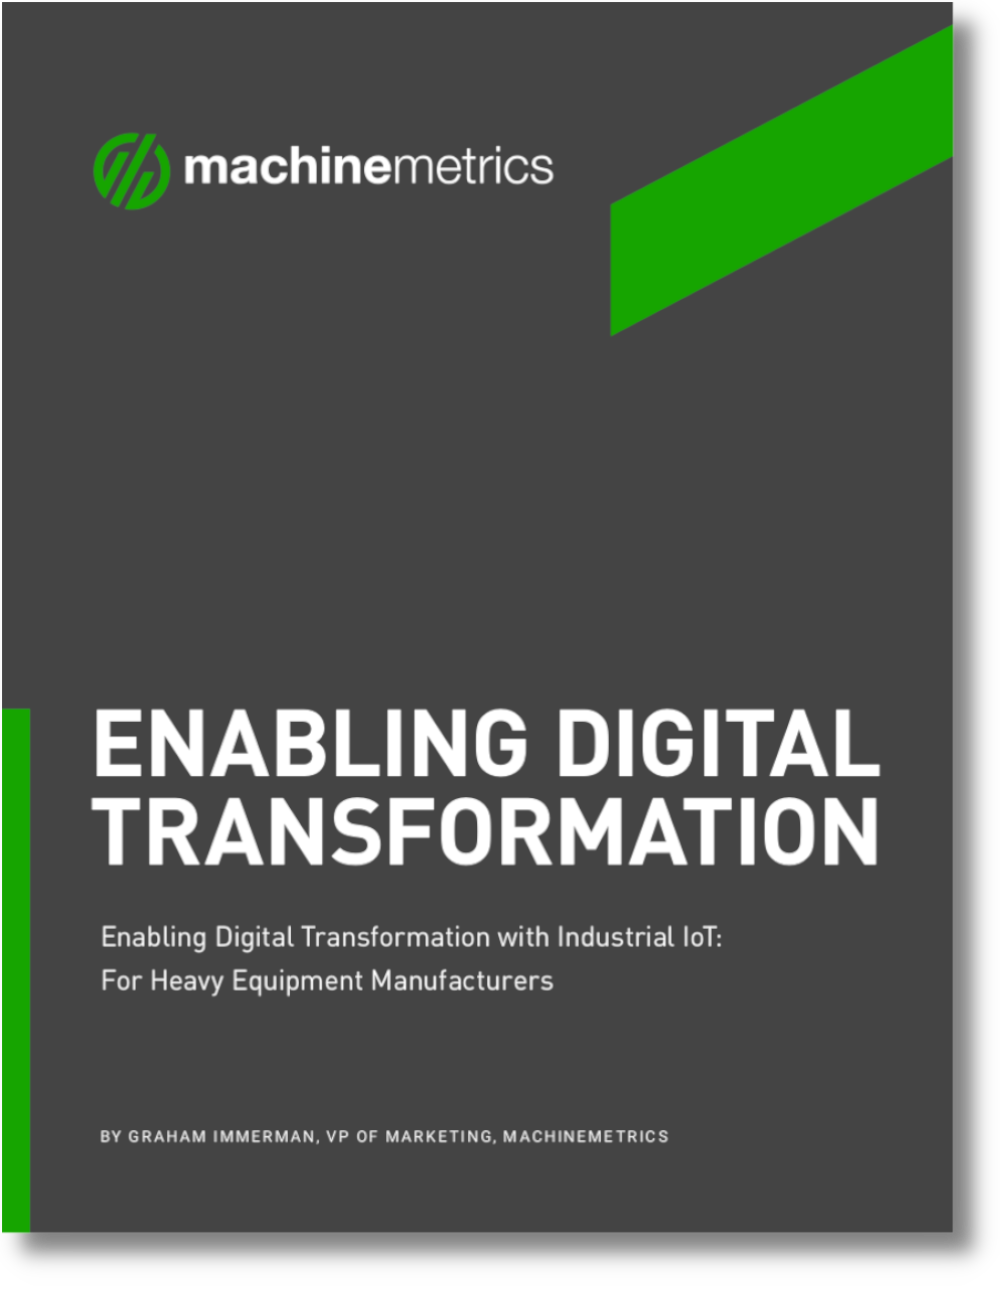 Enabling Digital Transformation with IIoT: For Heavy Equipment Manufacturers